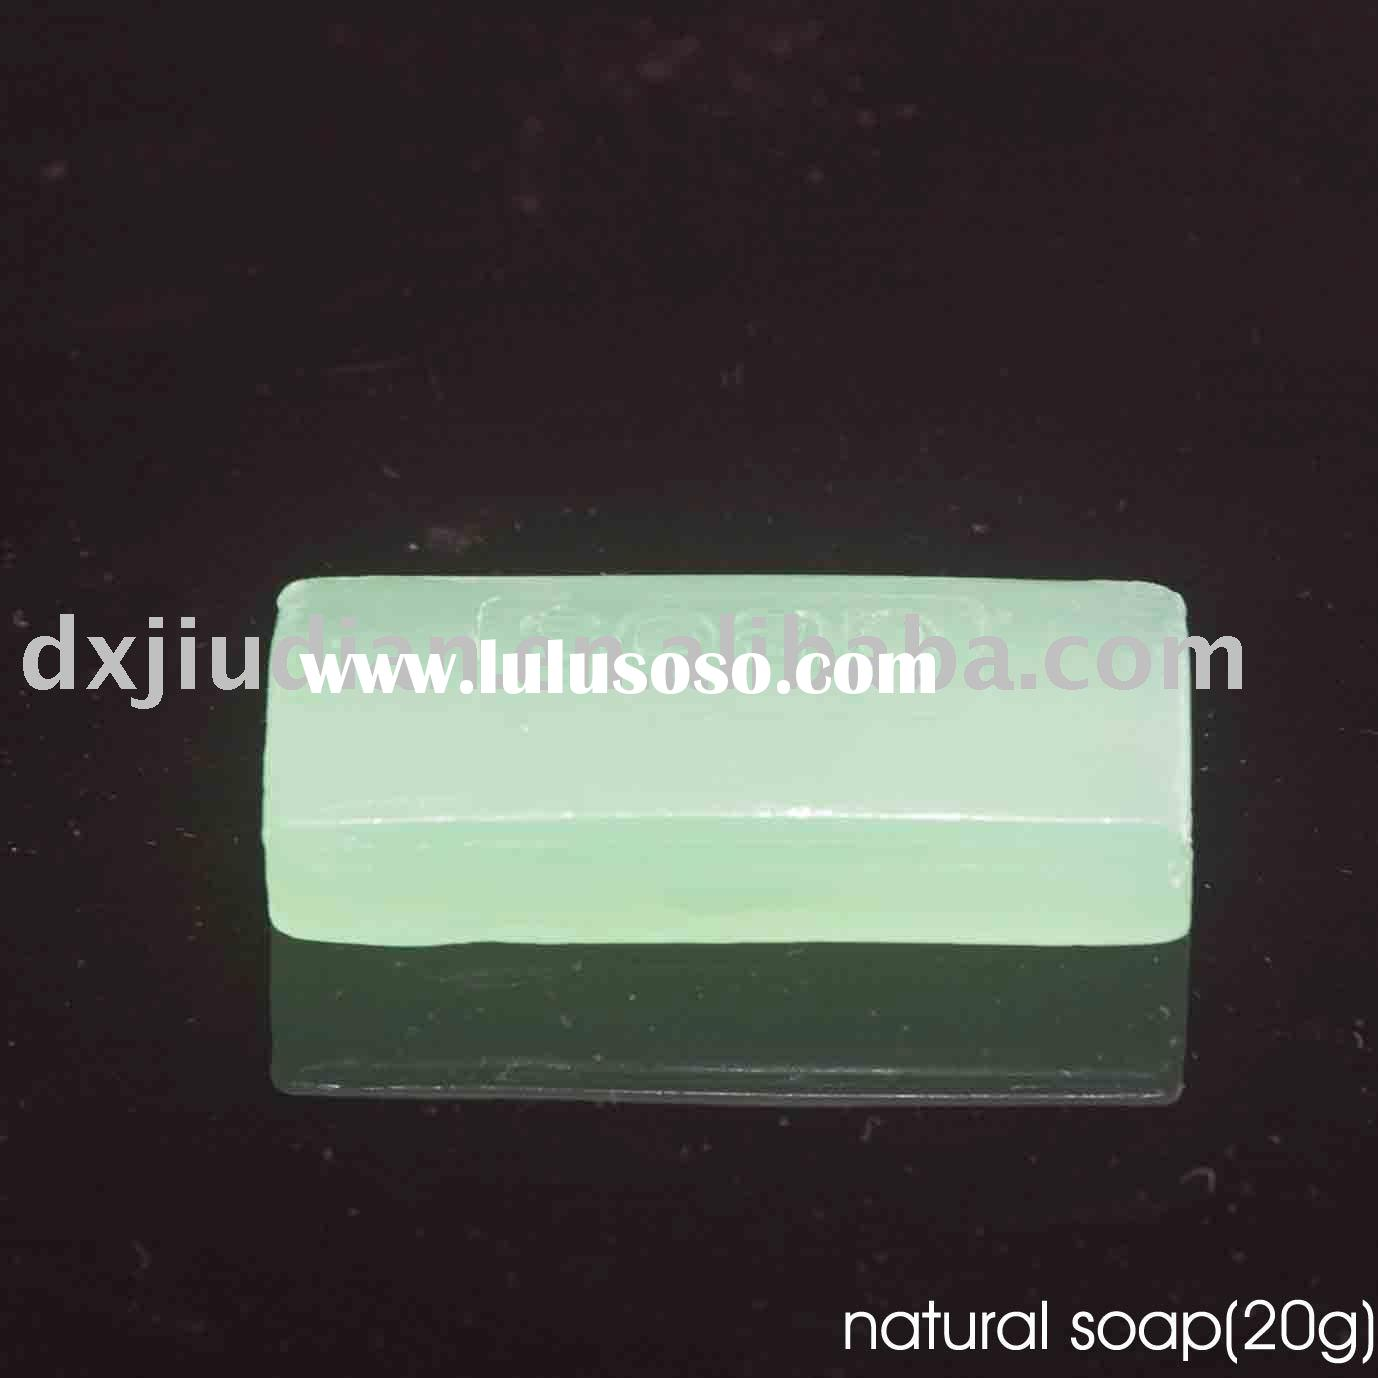 hotel amenities, natural soap, hotel bar soap